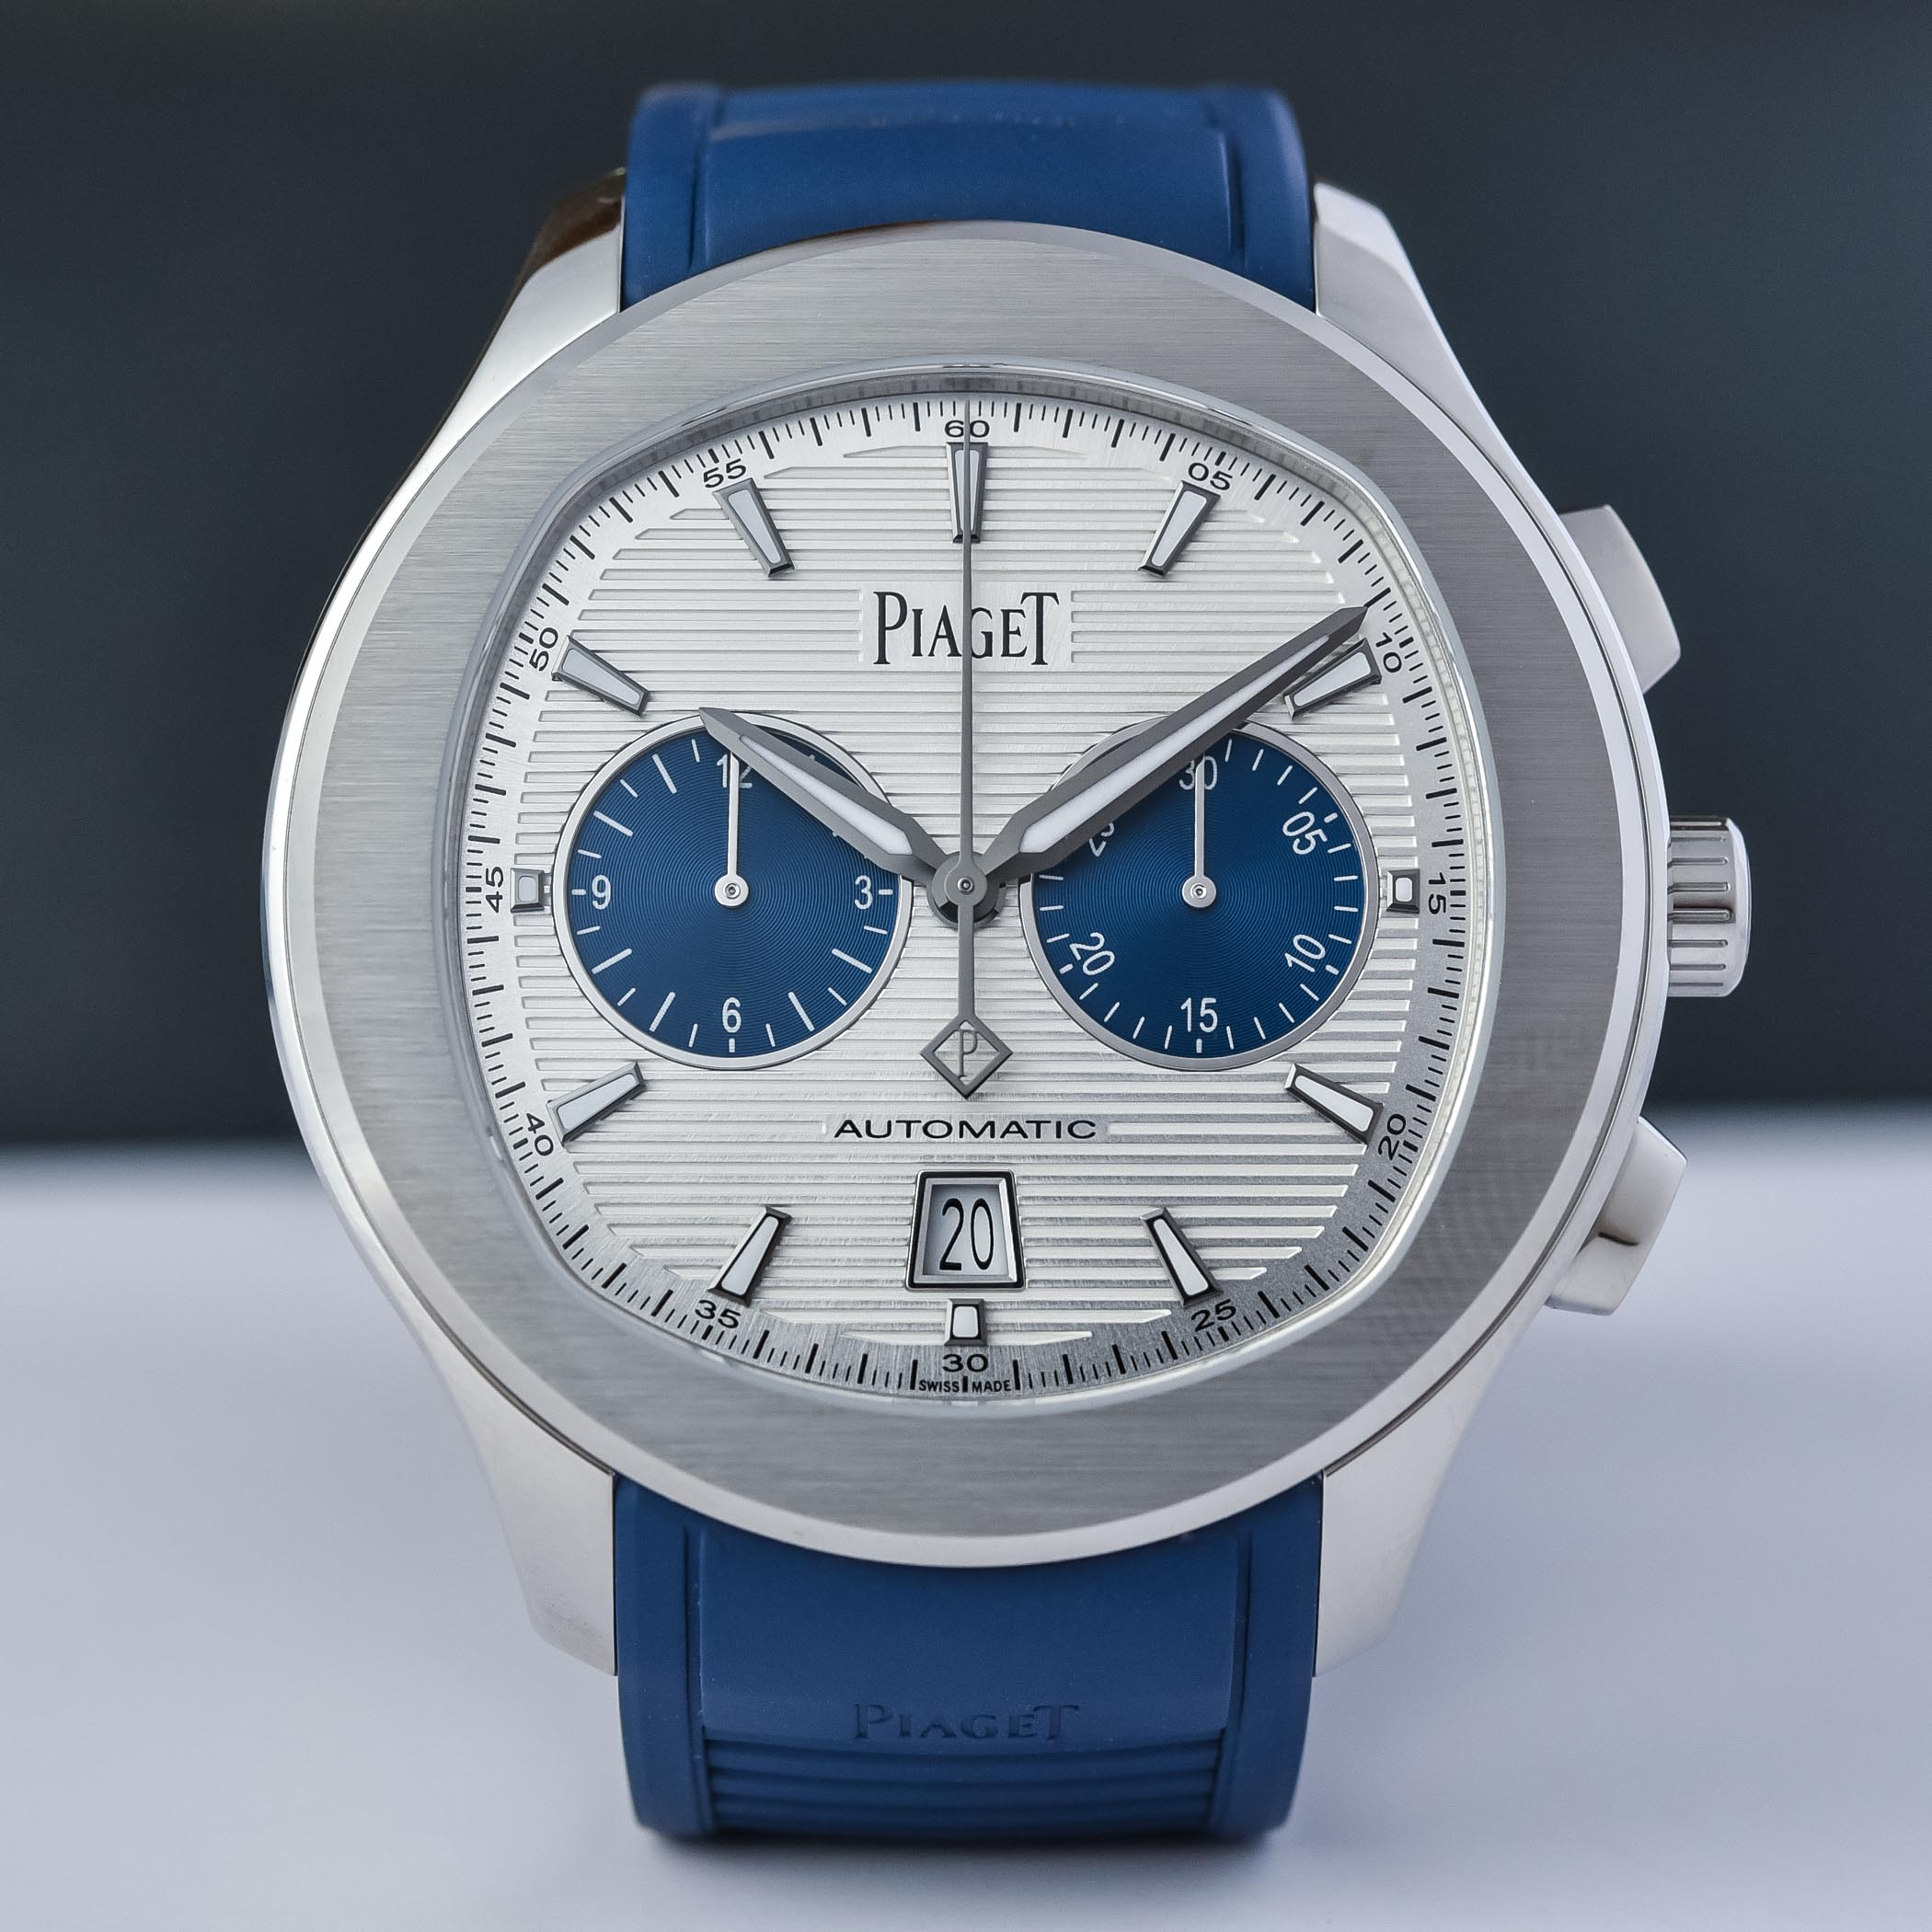 Piaget-Polo-Blue-Panda-Automatic-Chronograph-42mm-Rubber-Strap-G0A46013-hands-on-5.jpg